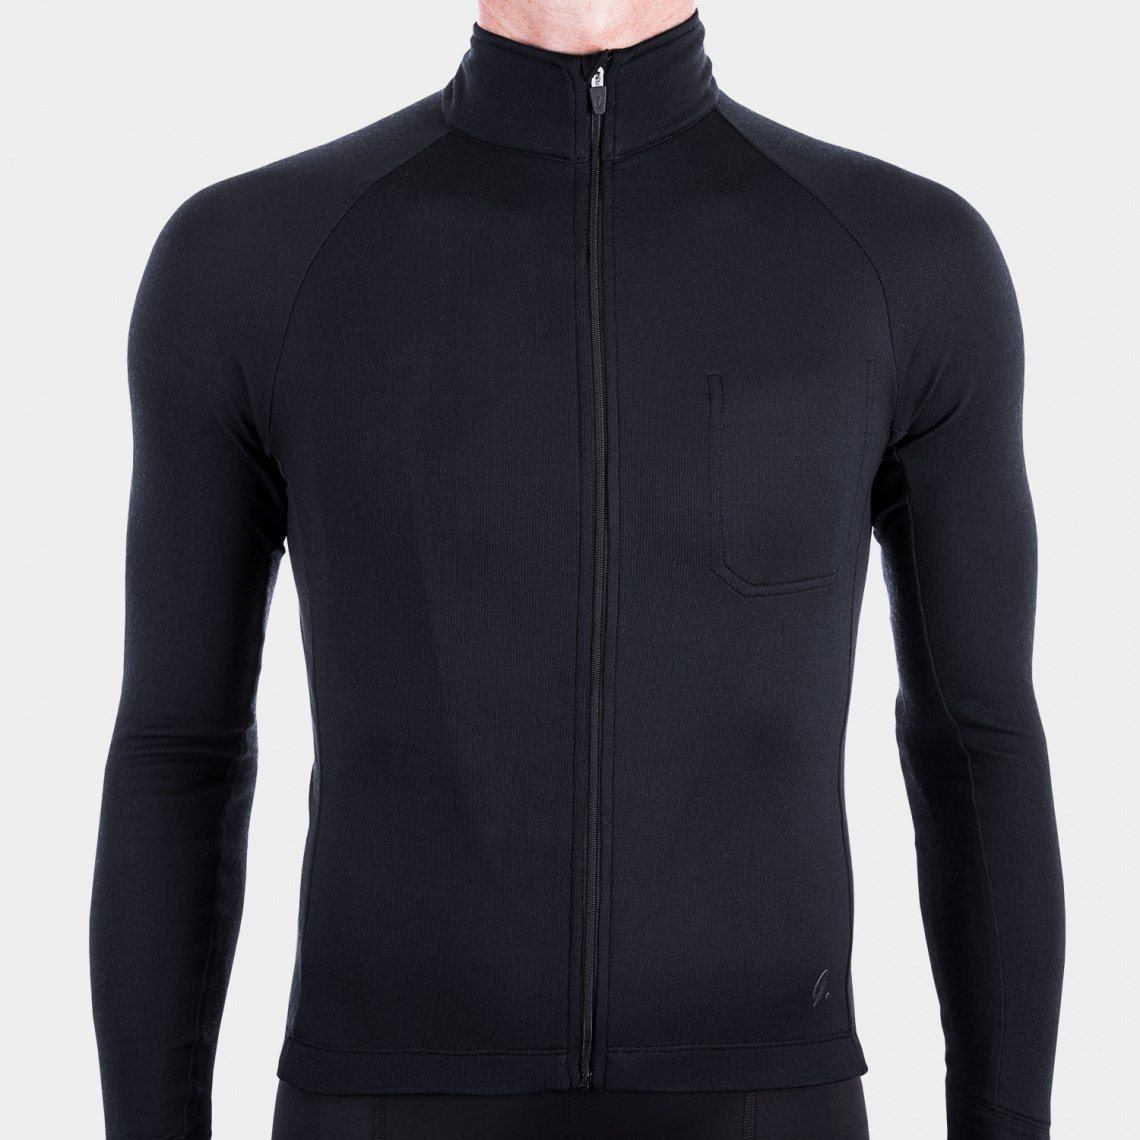 Long Sleeve Cycling Jersey - Anthracite Cycling Jersey Isadore XS